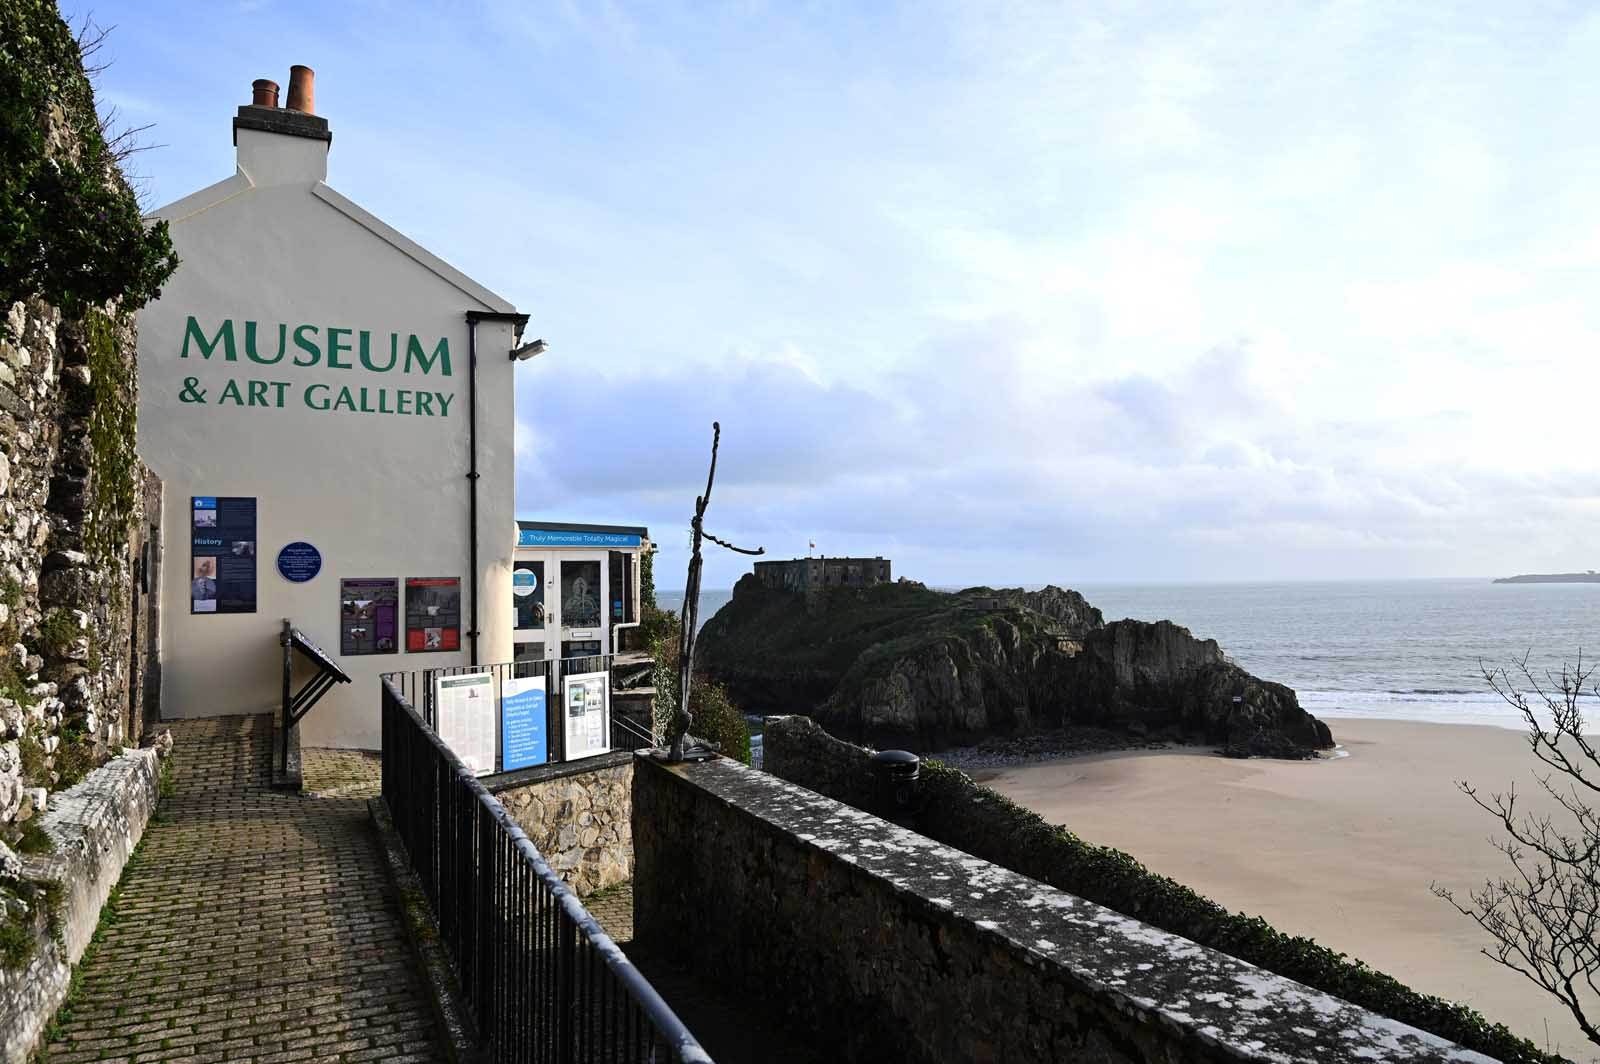 view of Tenby Museum and Art Gallery - two storied whitewashed building with chimney and gable end overlooking a beach cove with rock outcrop and castle in the distance